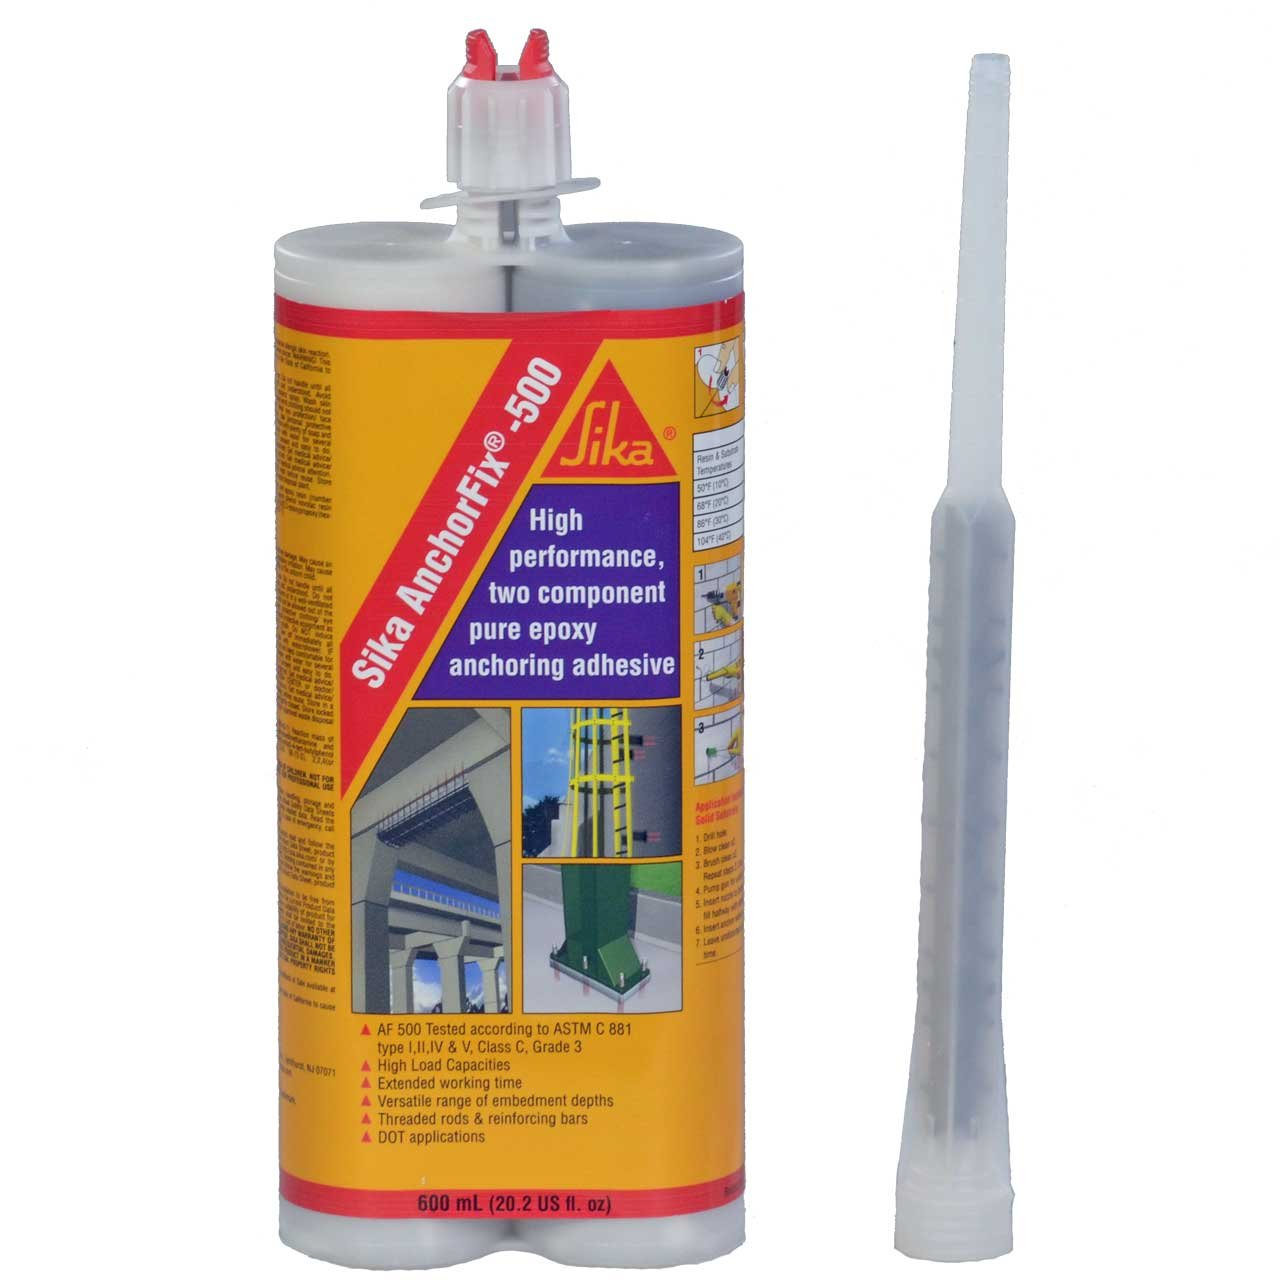 Sika AnchorFix 500, 20 oz Two Component Epoxy, High Performance, Concrete  Anchoring System